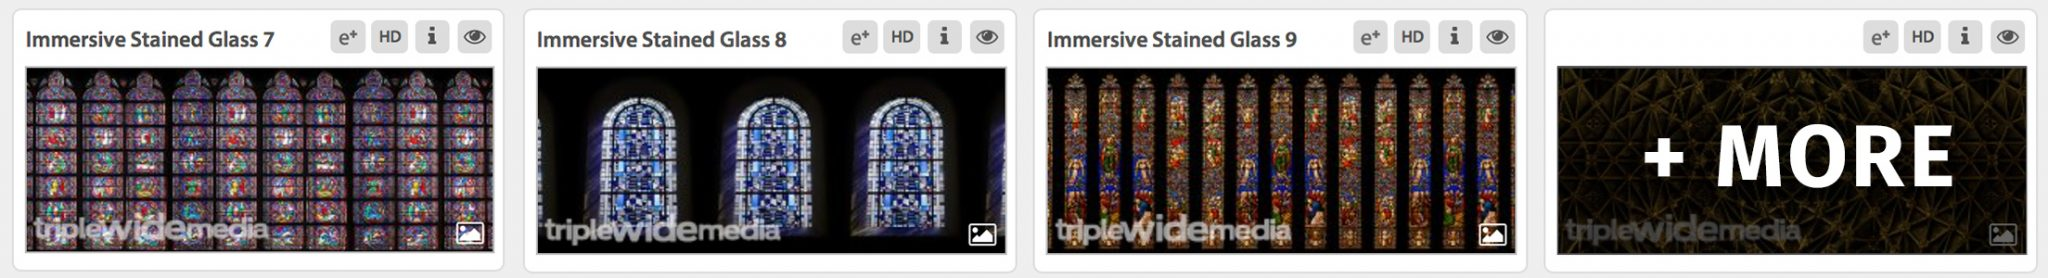 Immersive Stained Glass Imagery Set from Luke Mcelroy